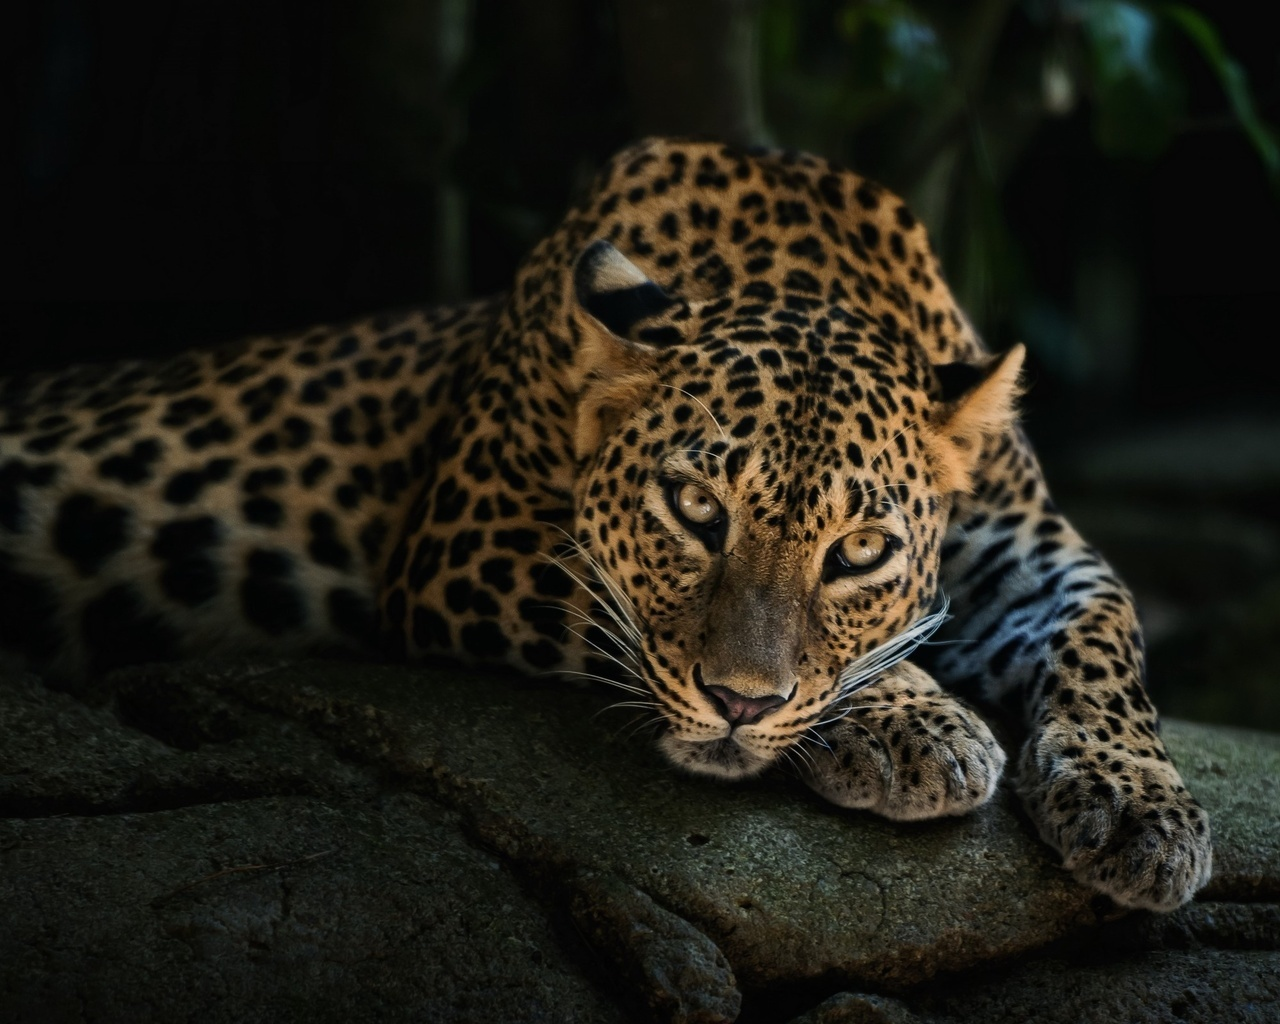 21291 download wallpaper Animals, Leopards screensavers and pictures for free